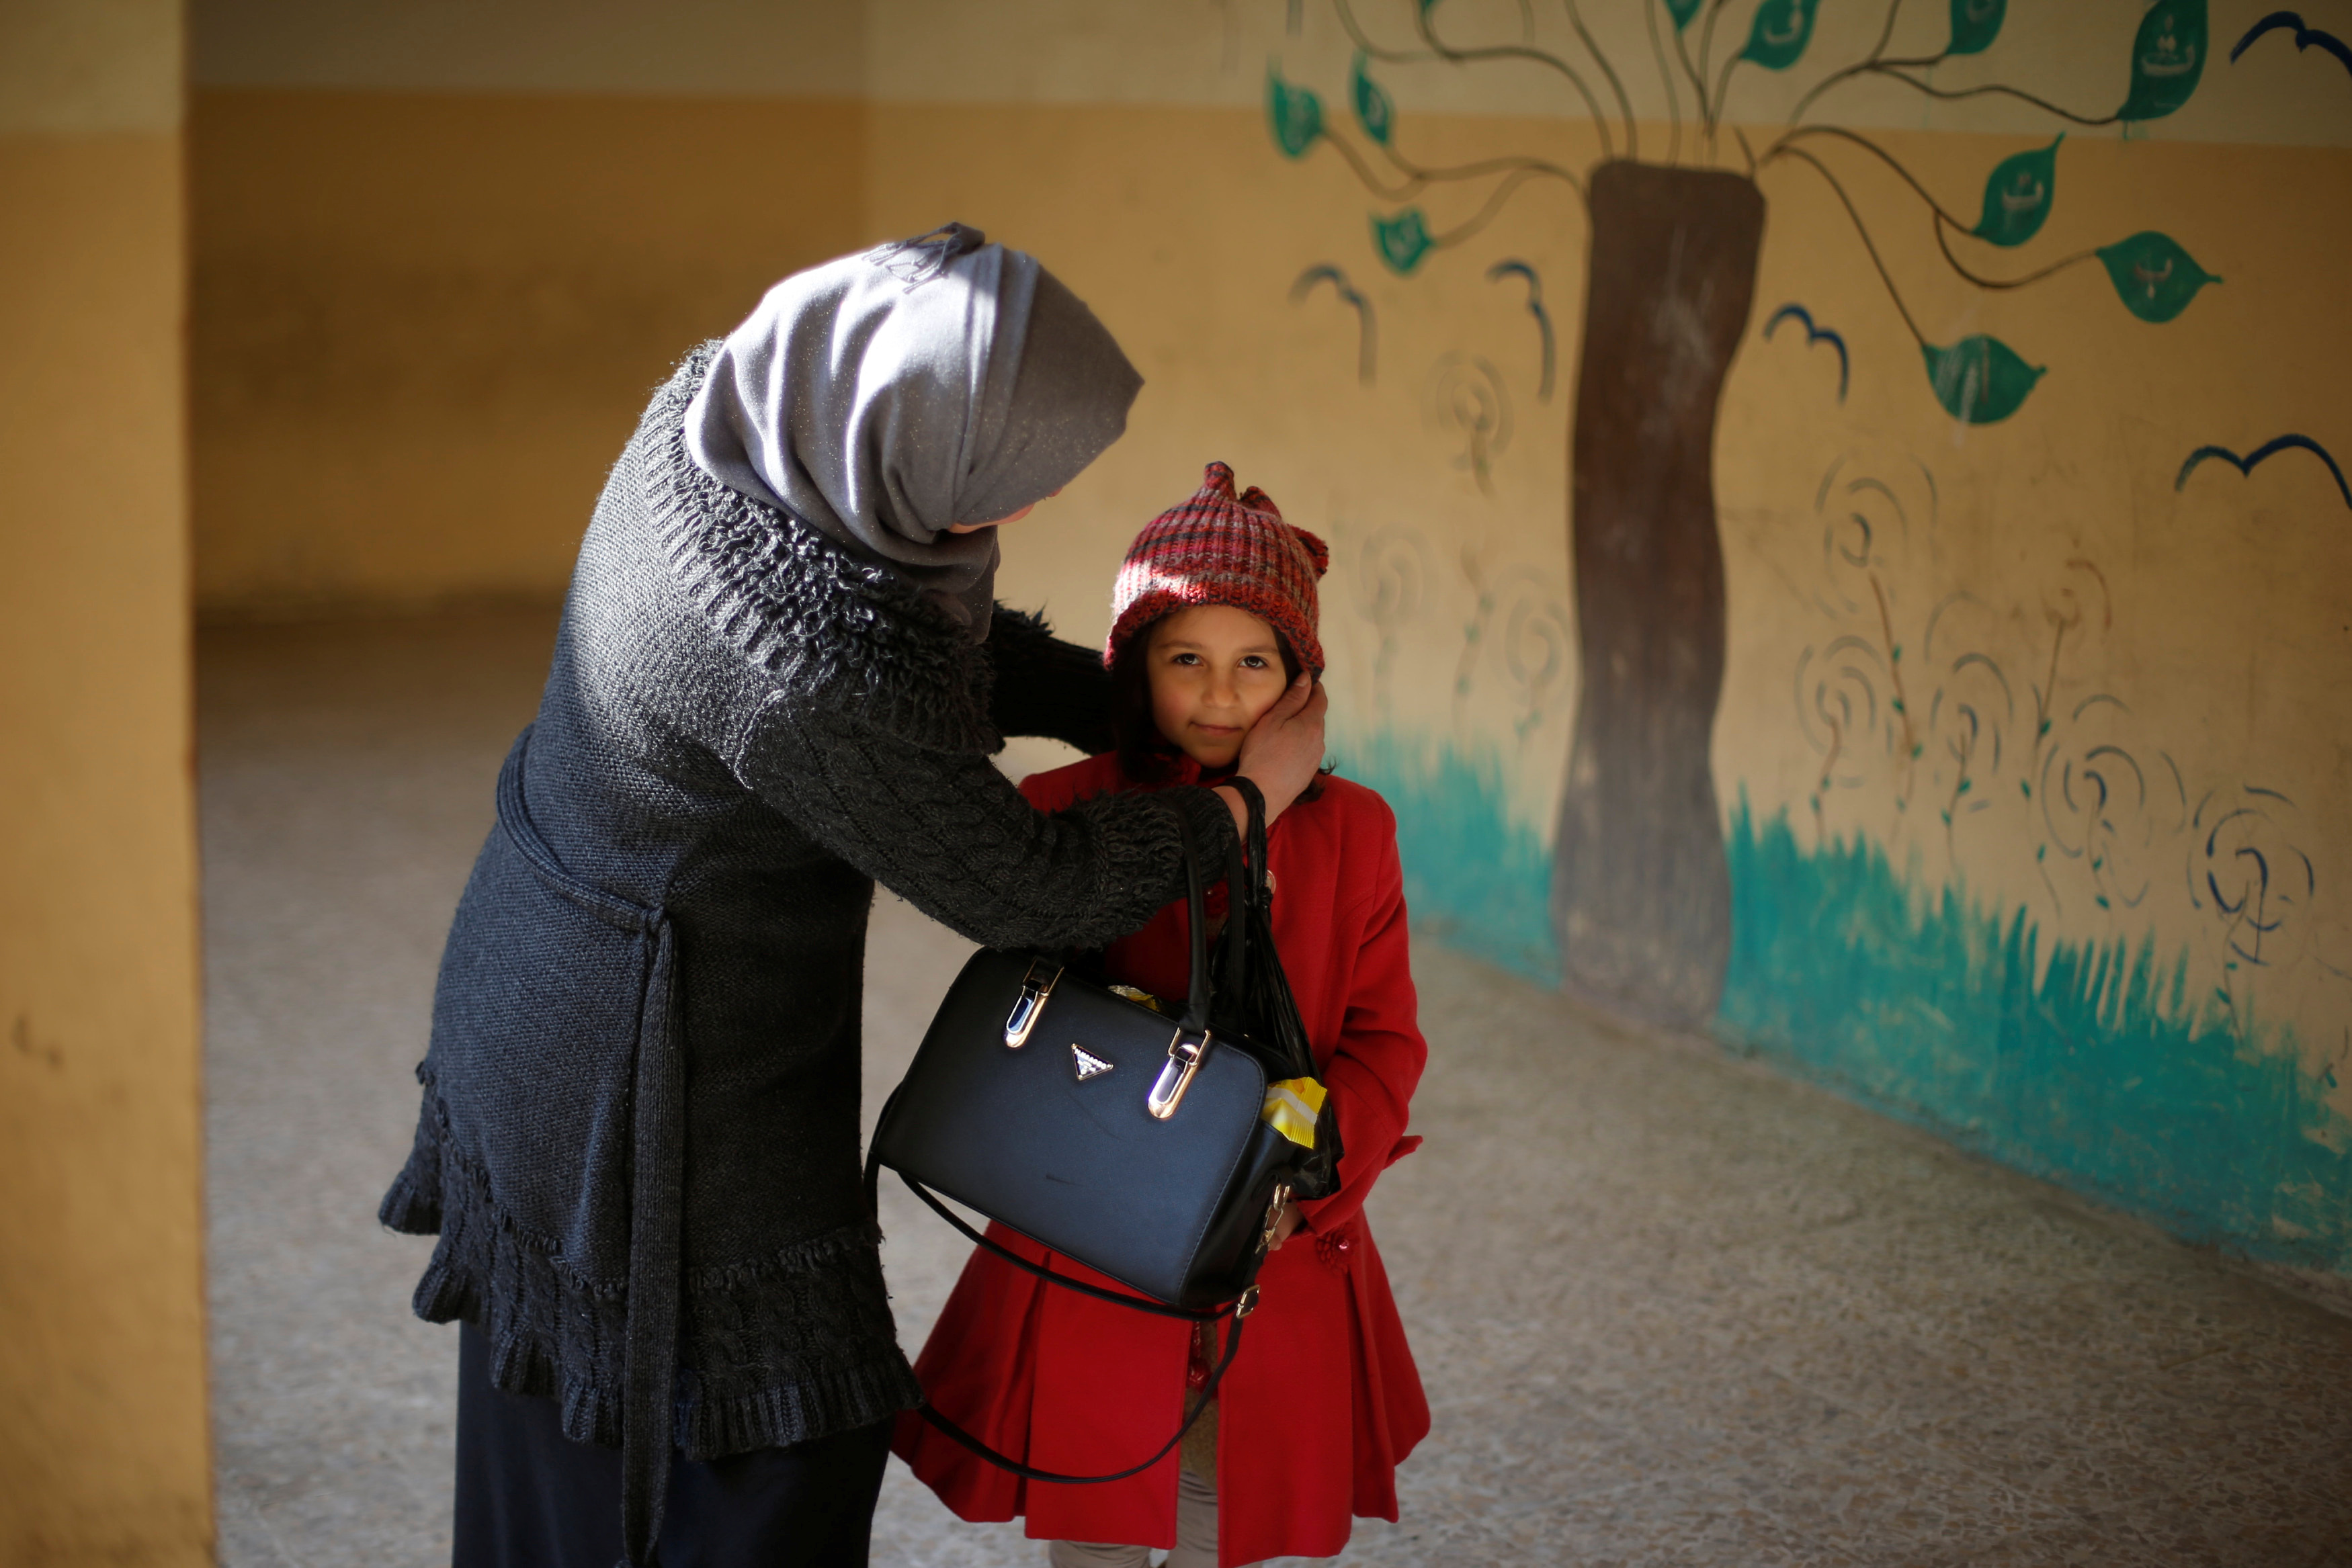 A mother adjusts her daughter's hat before she enters a classroom on Jan. 23. Photo by Muhammad Hamed/Reuters